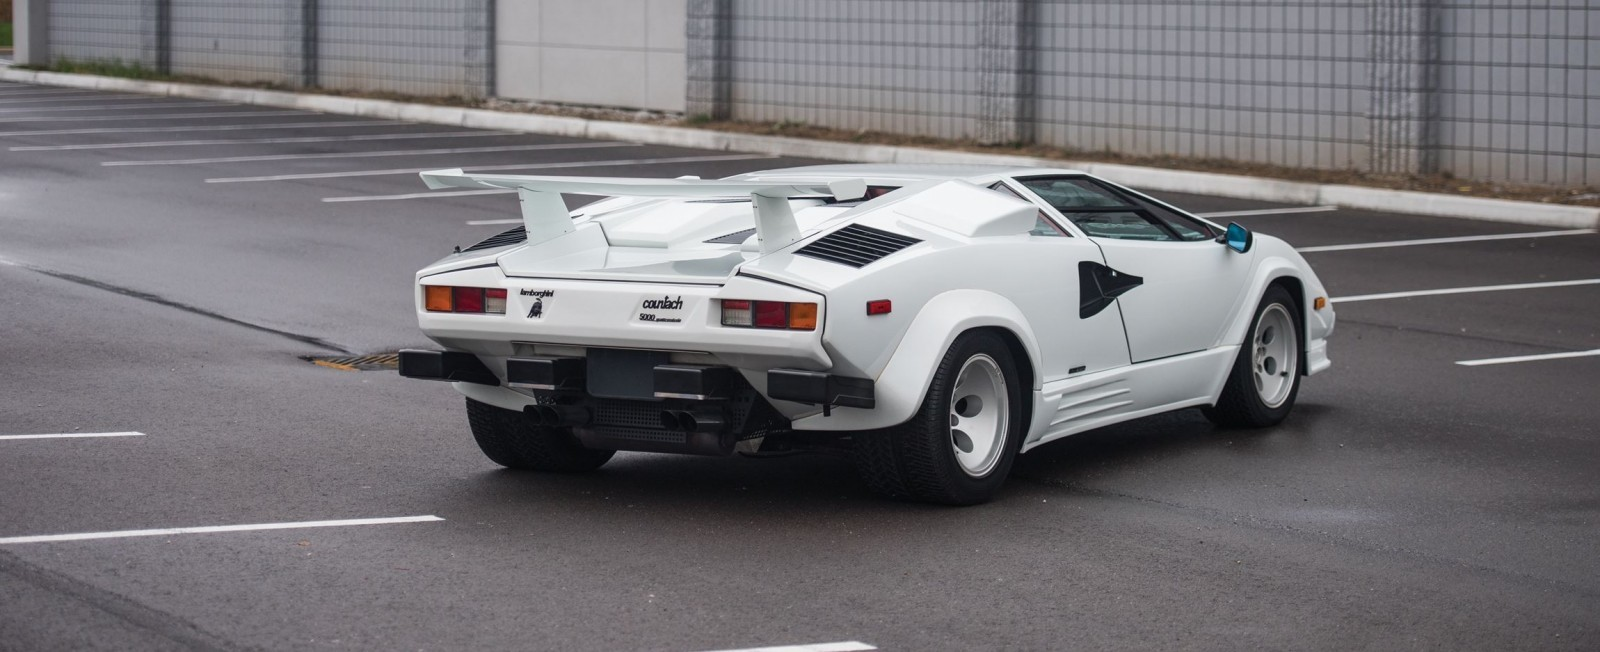 1988 5 Lamborghini Countach 5000 Qv In Bianco White Is As New Just 8k Miles